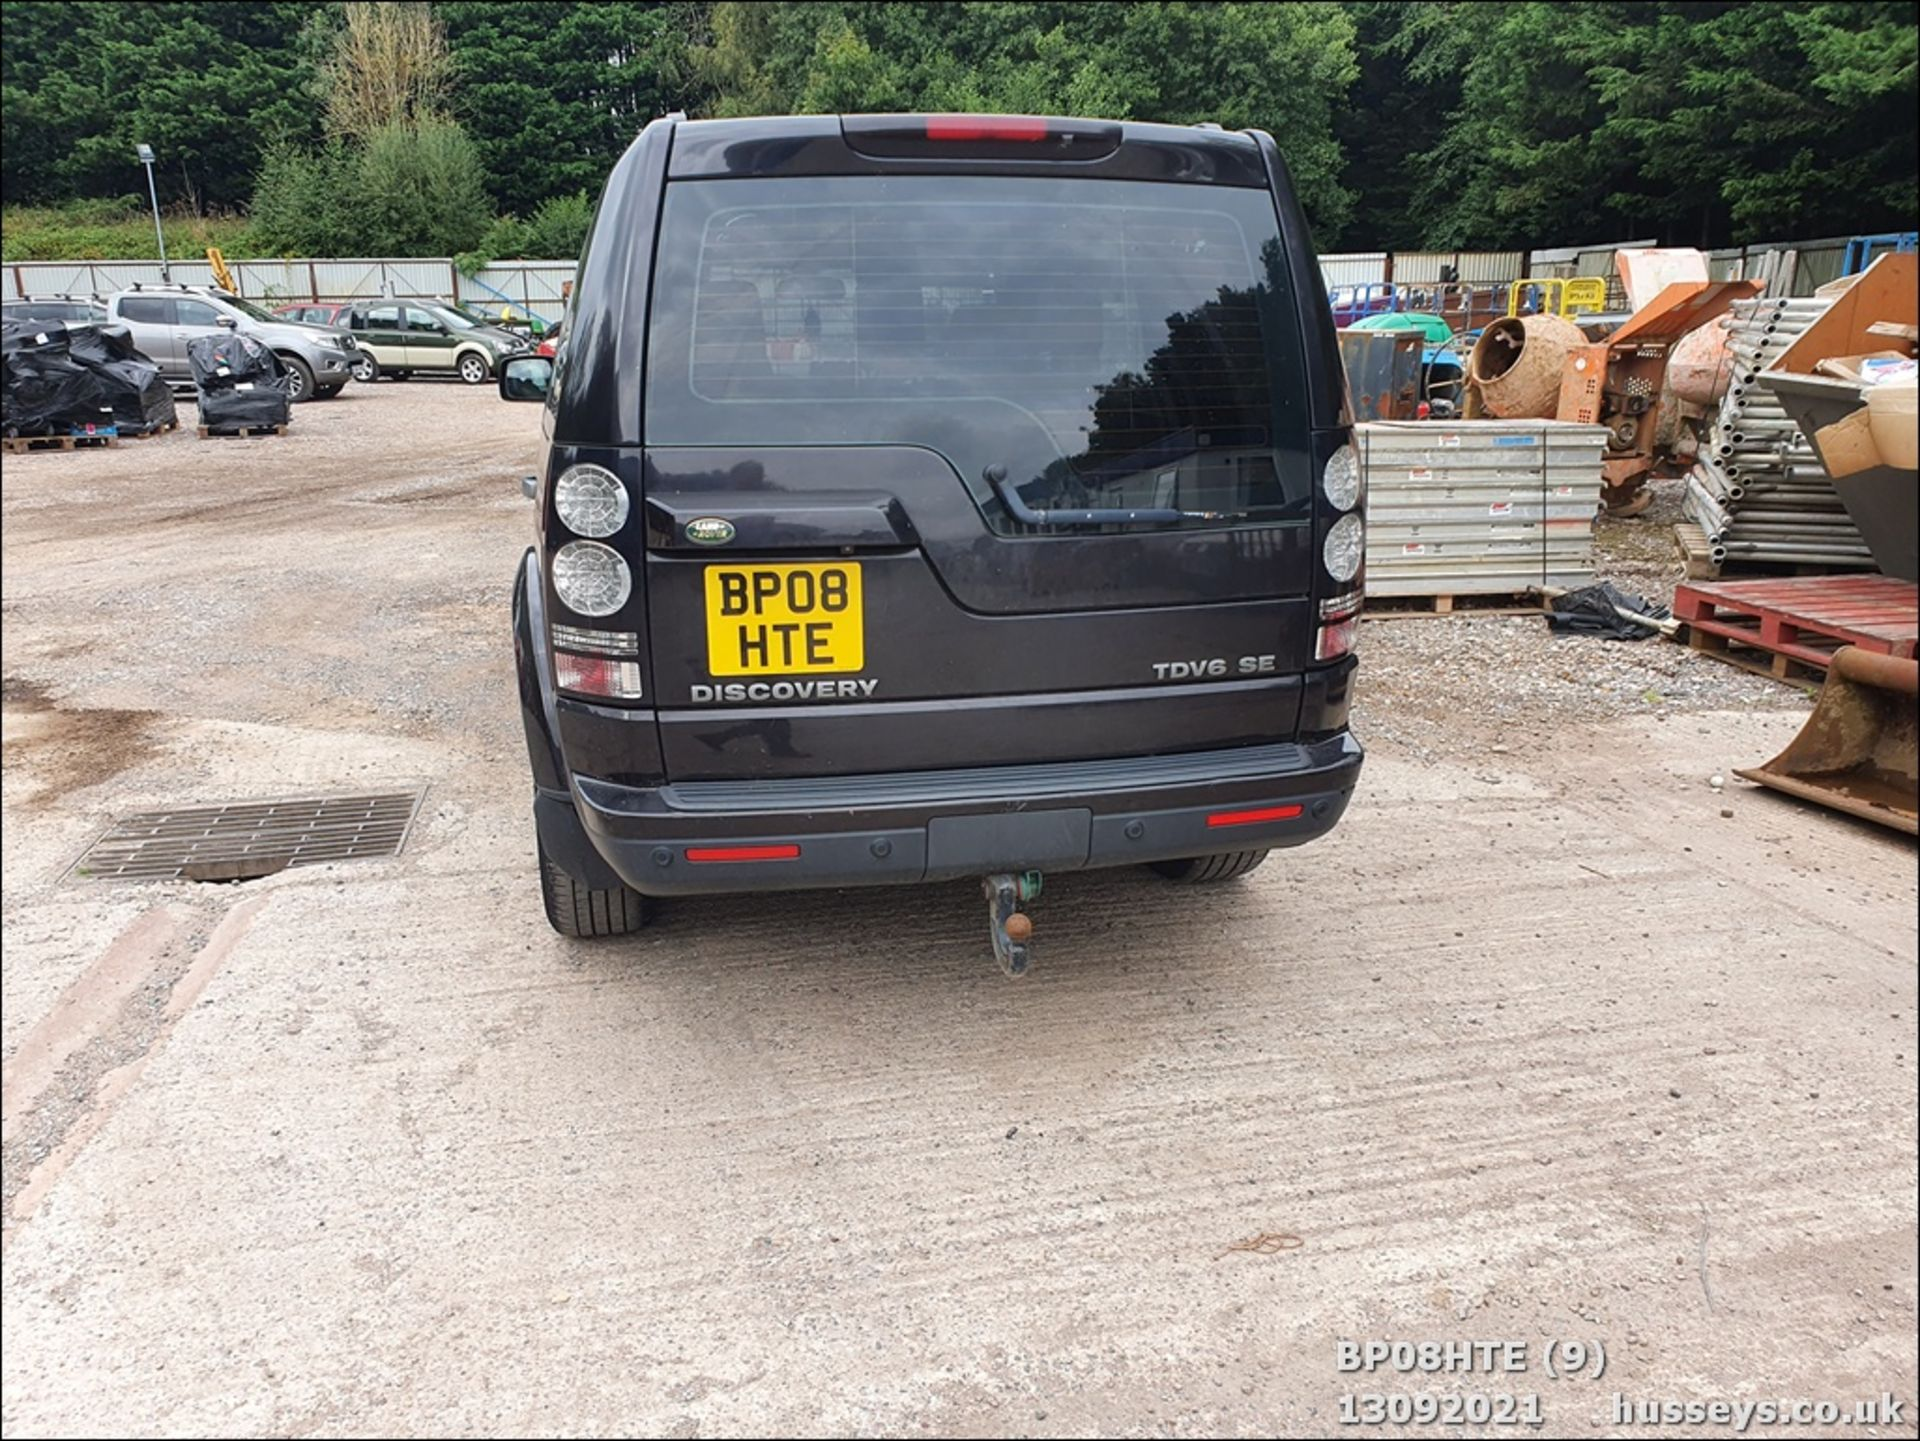 08/08 LAND ROVER DISCOVERY TDV6 SE A - 2720cc 5dr Estate (Brown, 190k) - Image 9 of 18